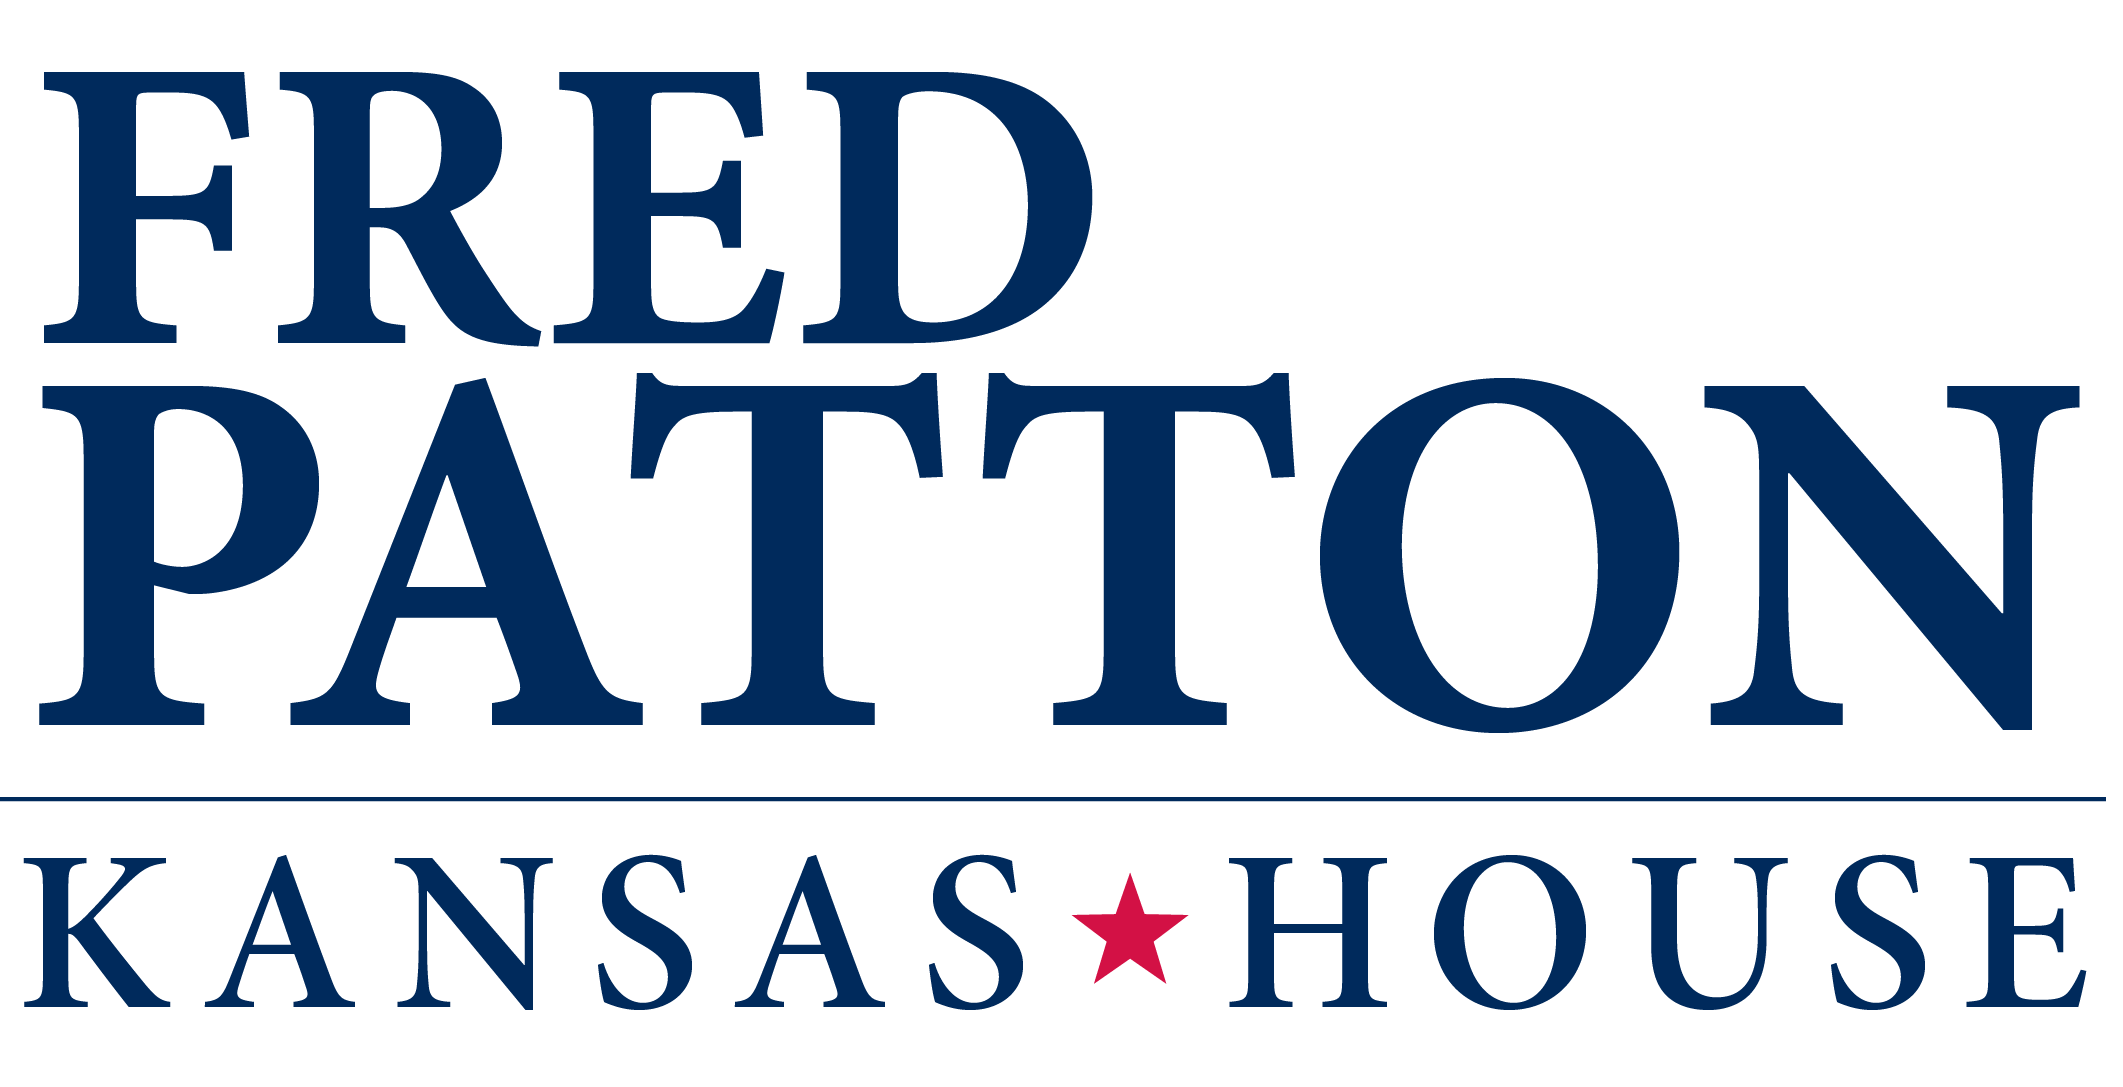 Fred Patton Logo